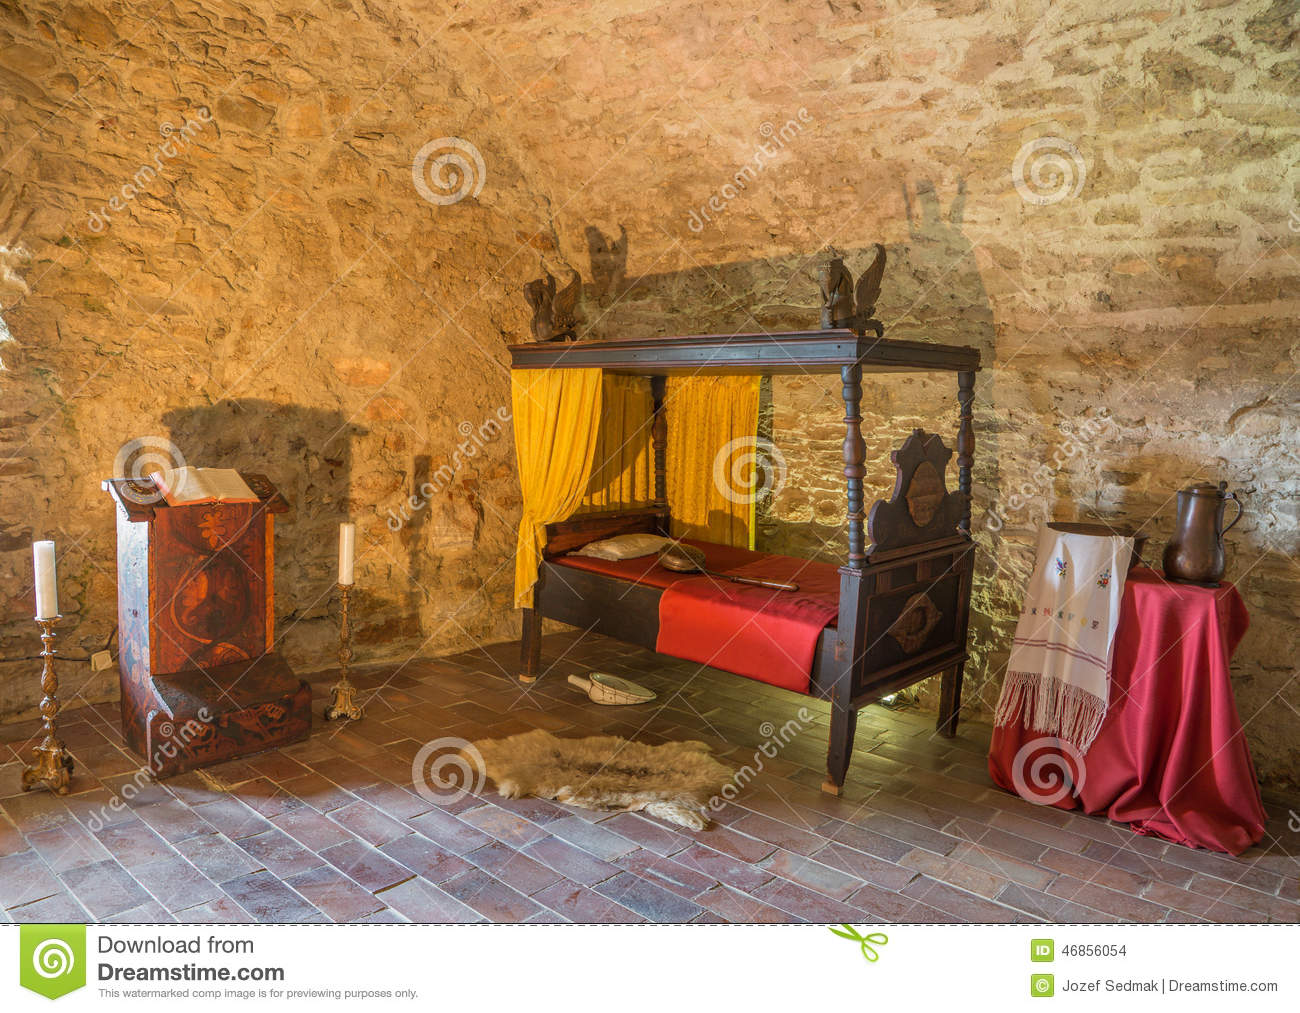 Download The Medieval Bedroom In The Spissky Castle. Stock Photo   Image Of  Castle,